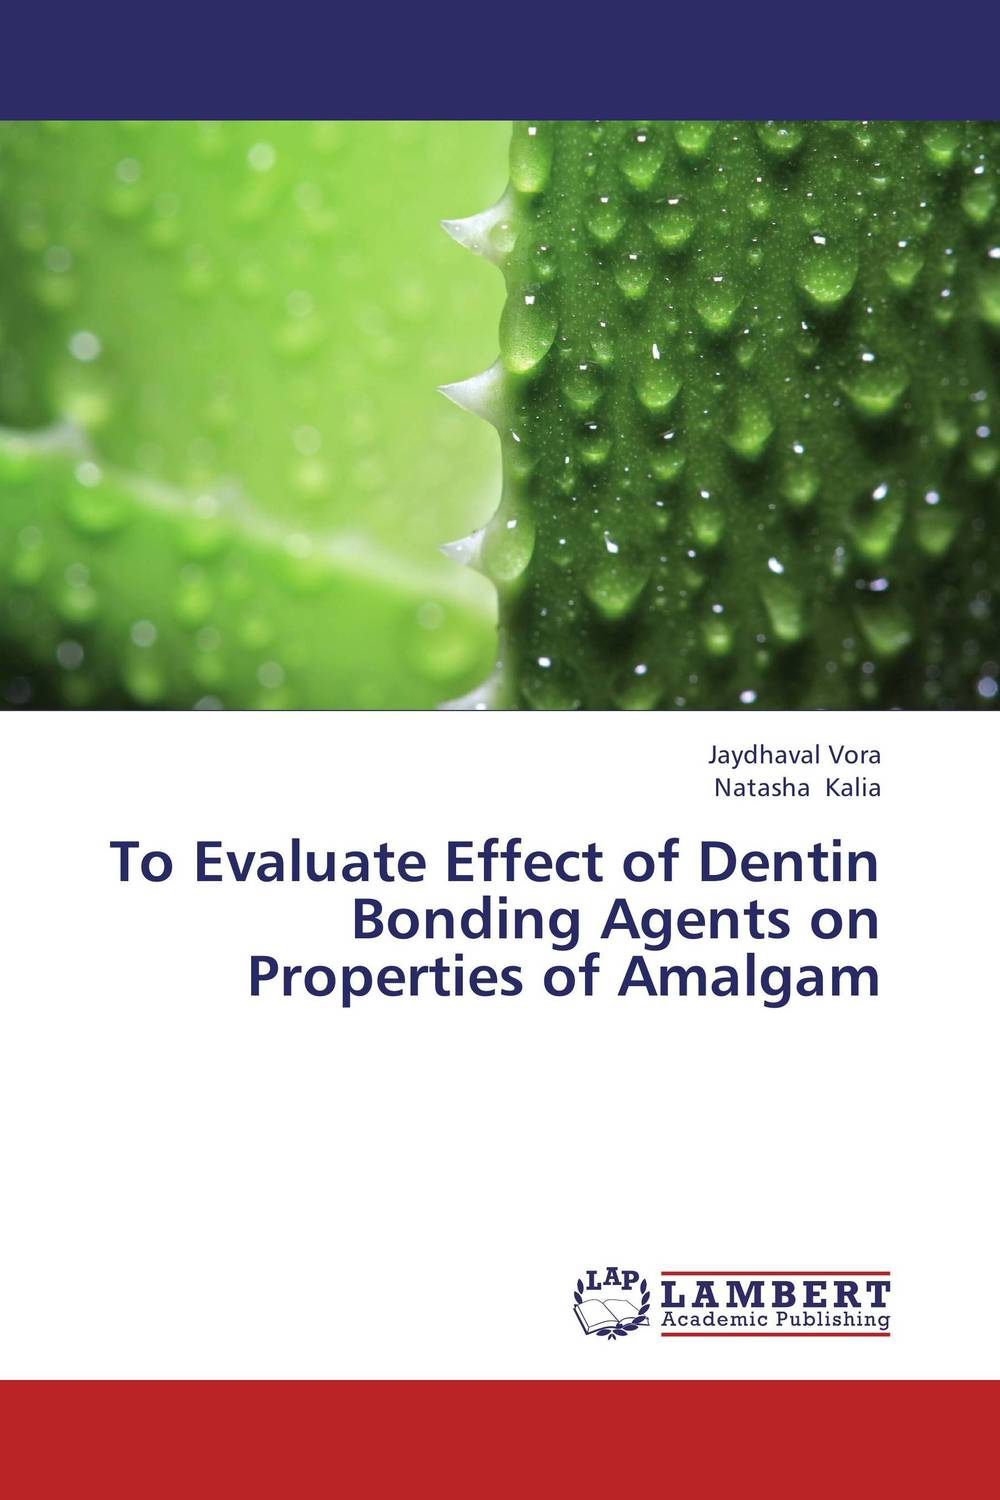 To Evaluate Effect of Dentin Bonding Agents on Properties of Amalgam district substructures as agents of local governance